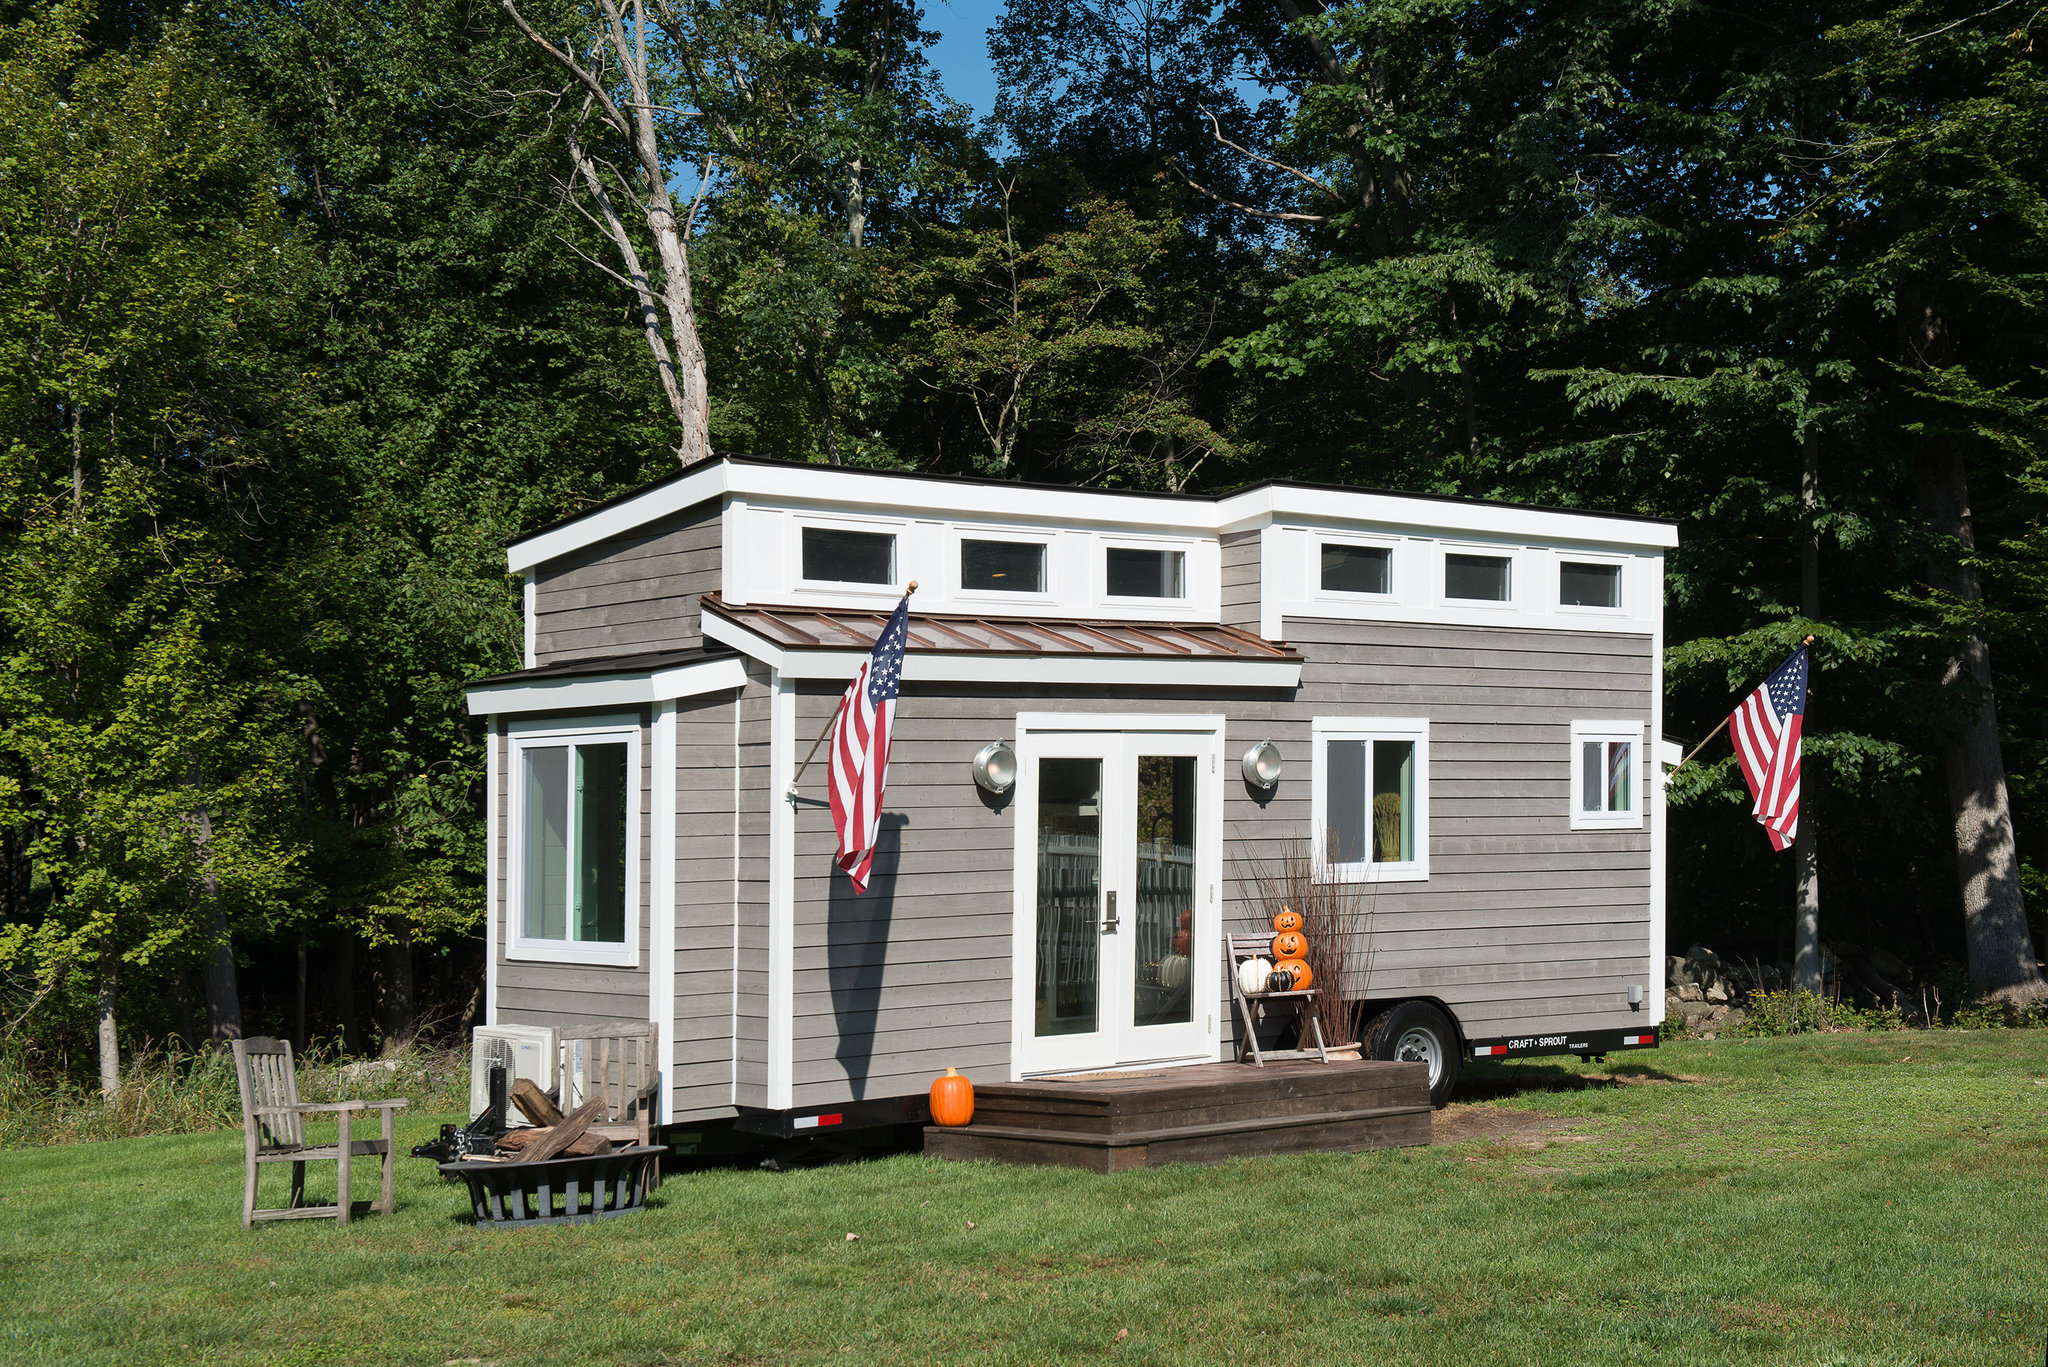 Finding A Spot For Your Tiny Home The New York Times